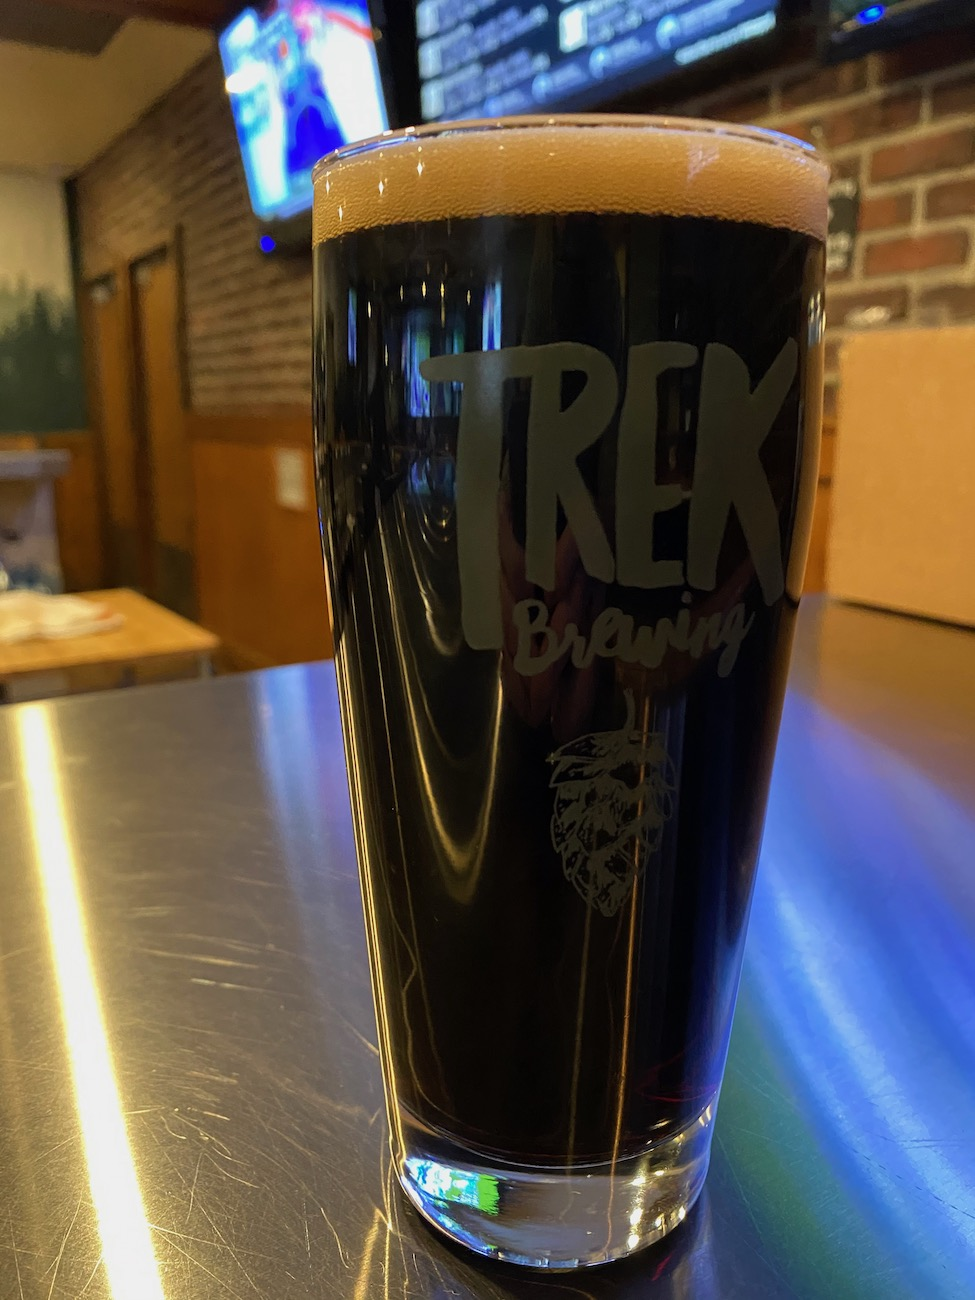 Pictured is the fabulous Trail Magik vanilla stout at Trek Brewing Company. There are several local breweries within Licking County, which has a beverage trail guide of local breweries, wineries, and coffee and soda shops. ADDRESS: 1486 Granville Road, Newark, OH (43055) / Image: Chez Chesak{ }// Published: 2.12.21